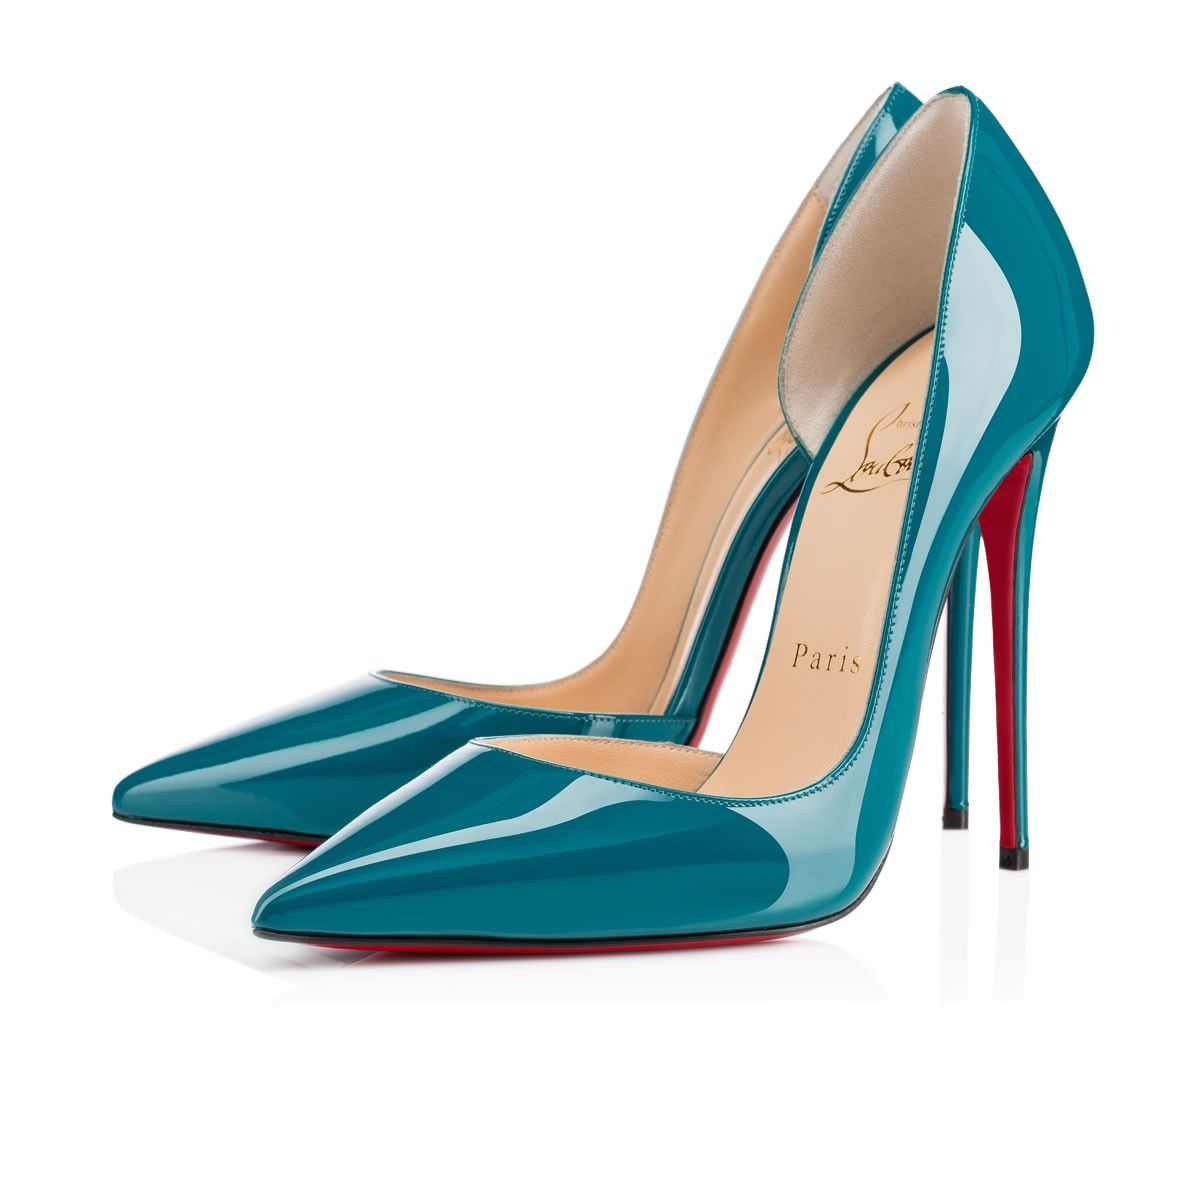 a07984274a08 Women Shoes - Iriza - Christian Louboutin